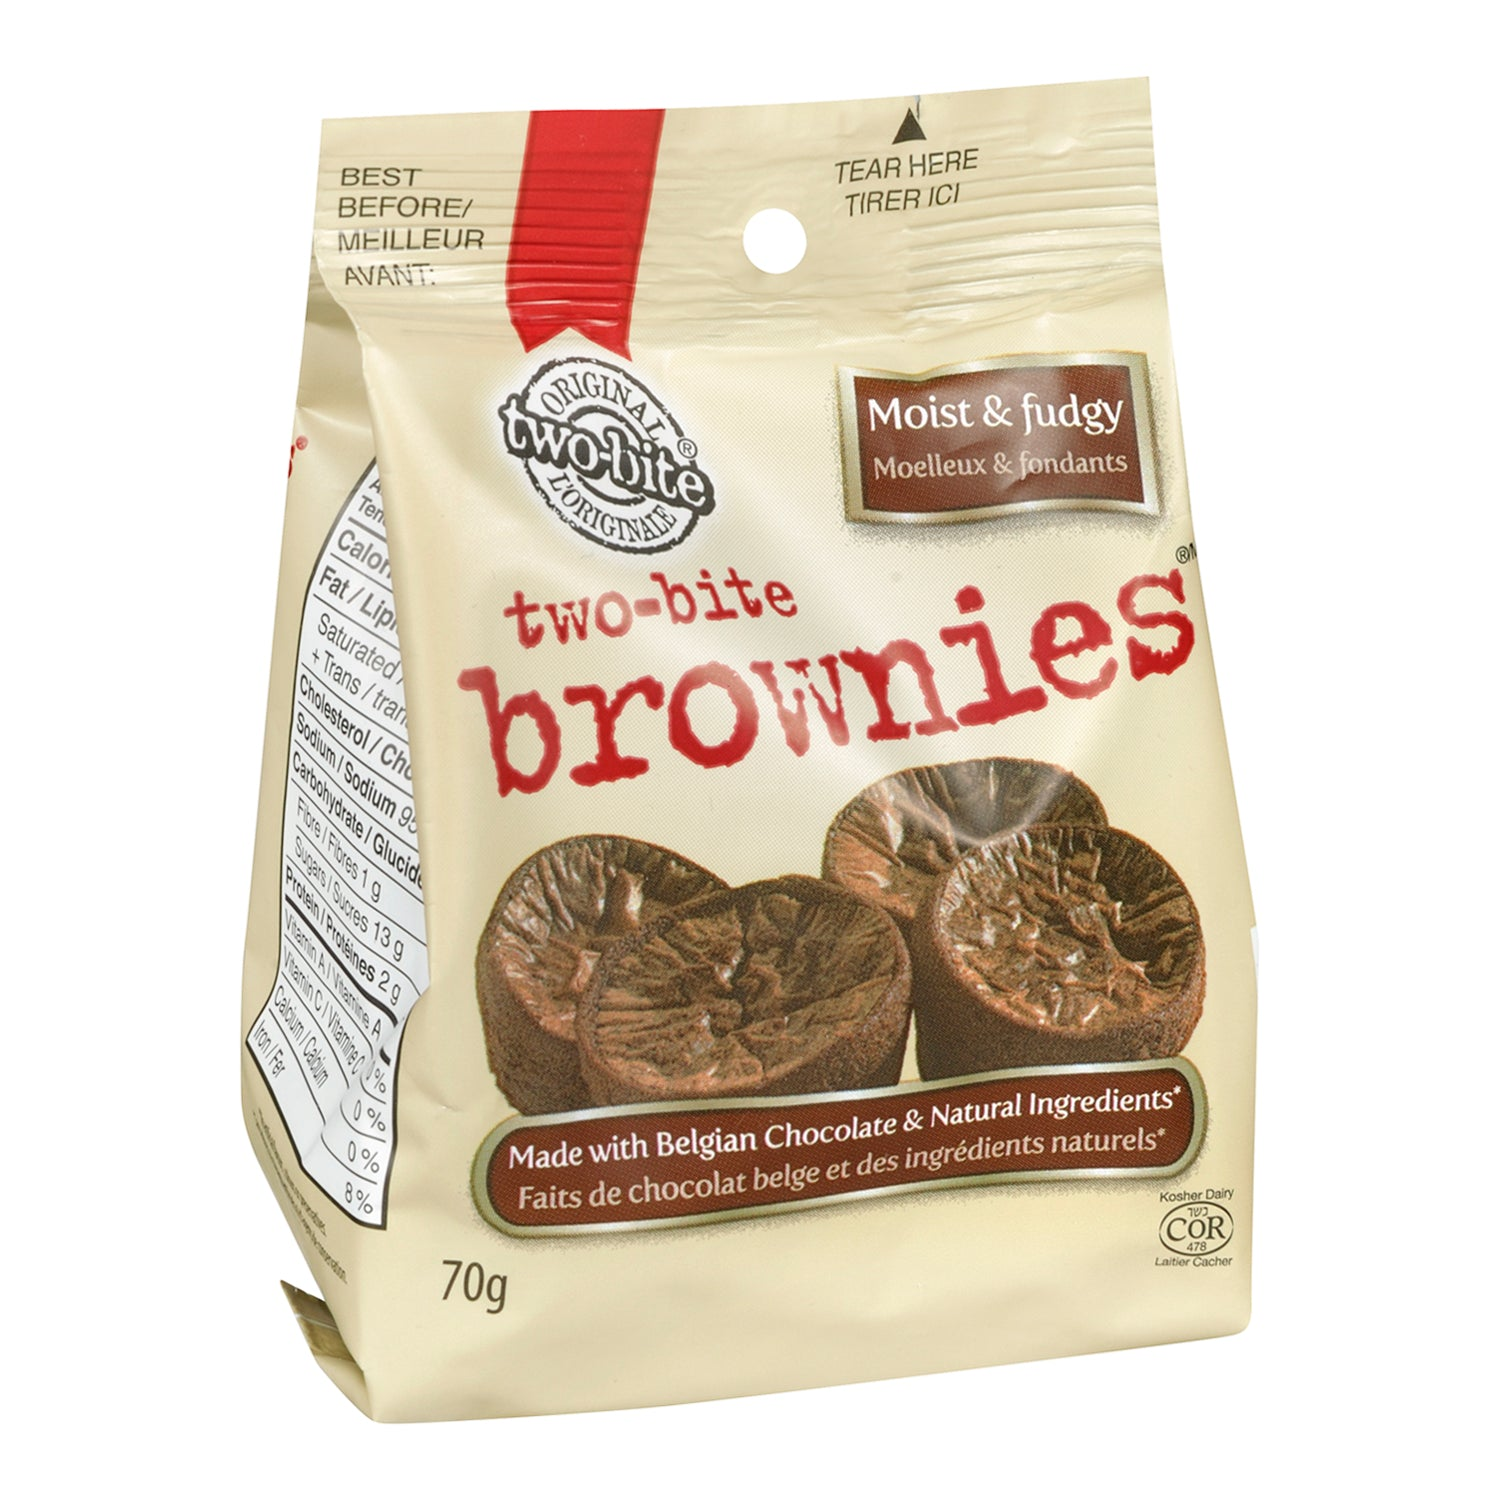 Grab and Go Frozen Two-Bite Brownies Snack 10 bags - 4 Pack [$1.25/each]